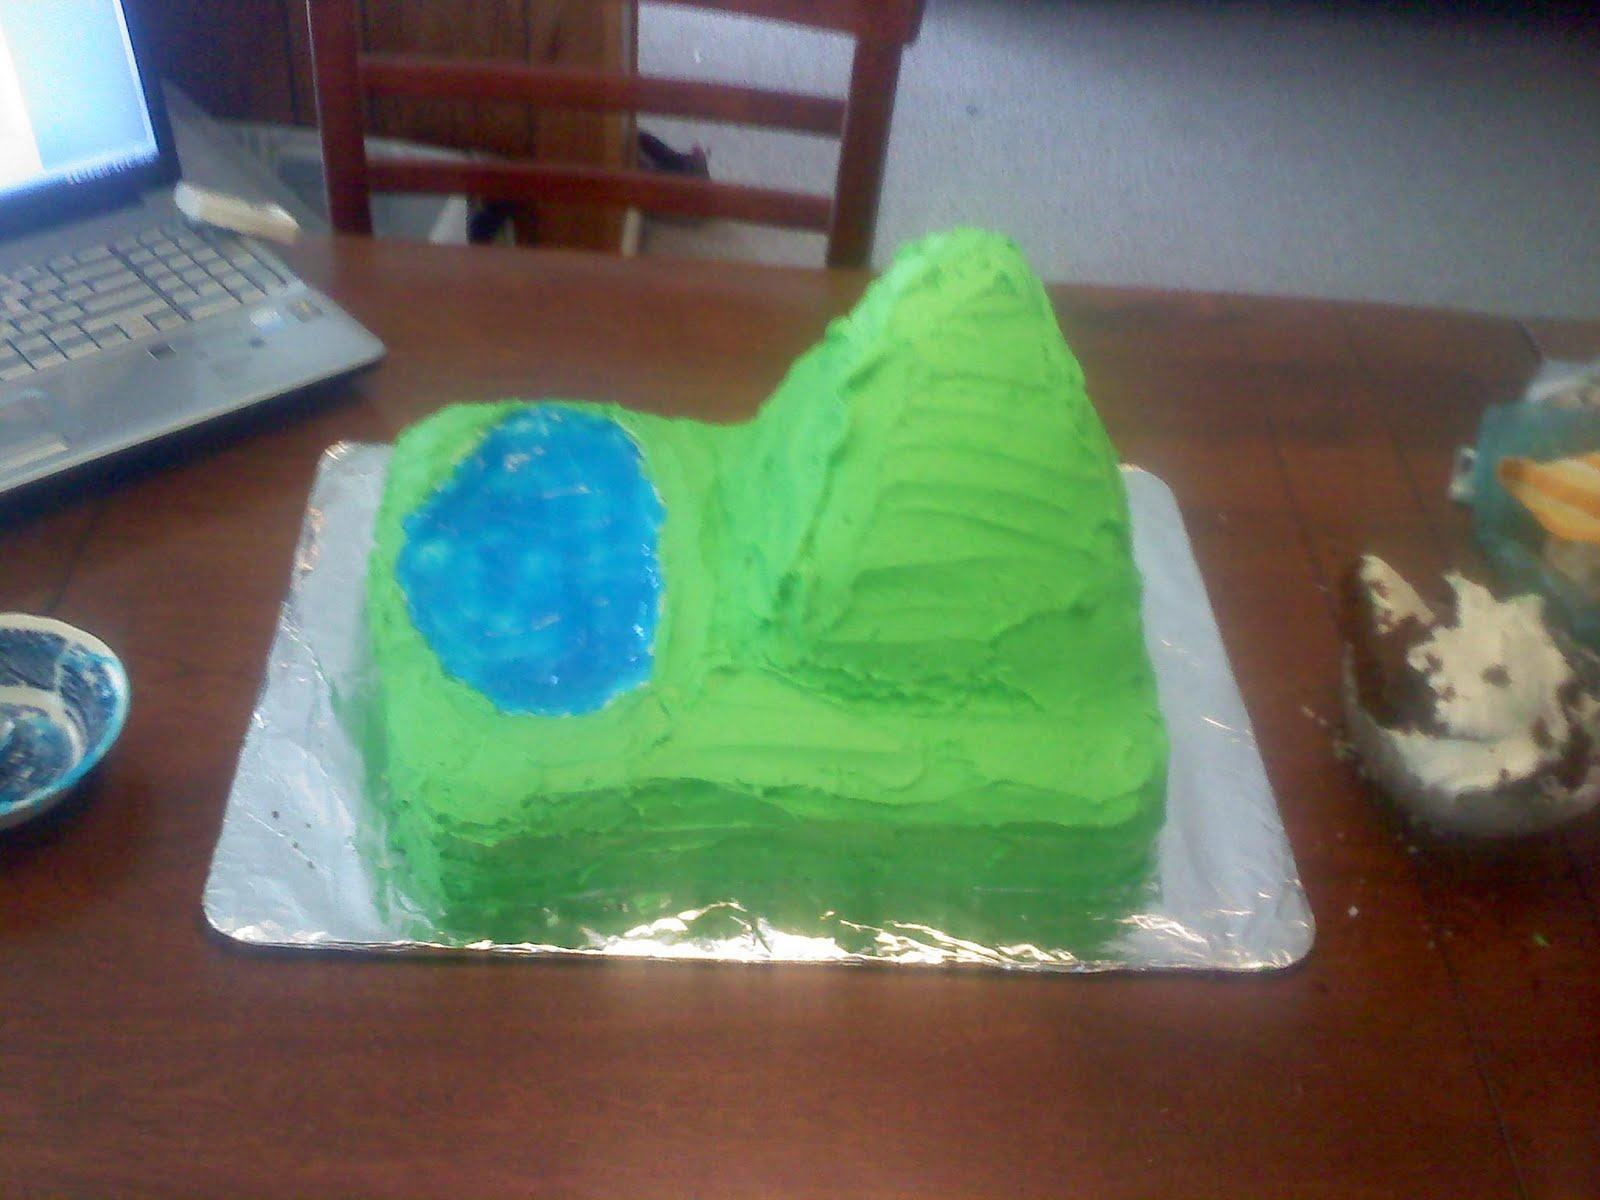 What Food Can Be Used To Make Mountains On Cake